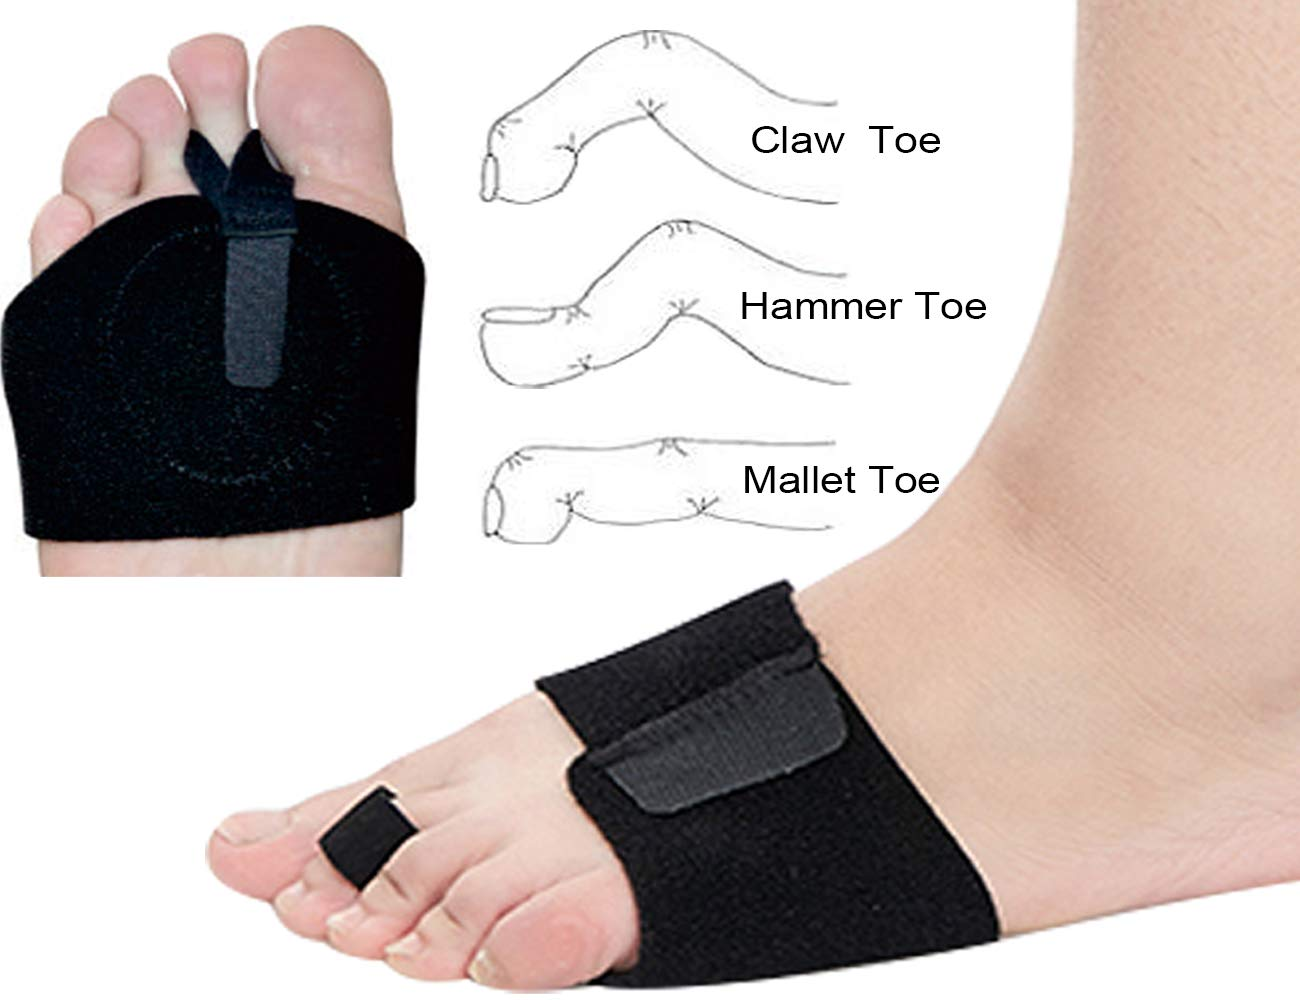 Hammer Toe Straighterner Corrector,Osteotomy Strap with Metatarsal Brace Included Metatarsal Pad for Mallet Toe, Claw Toe Straighten with Two Toe Loops by igoeshopping